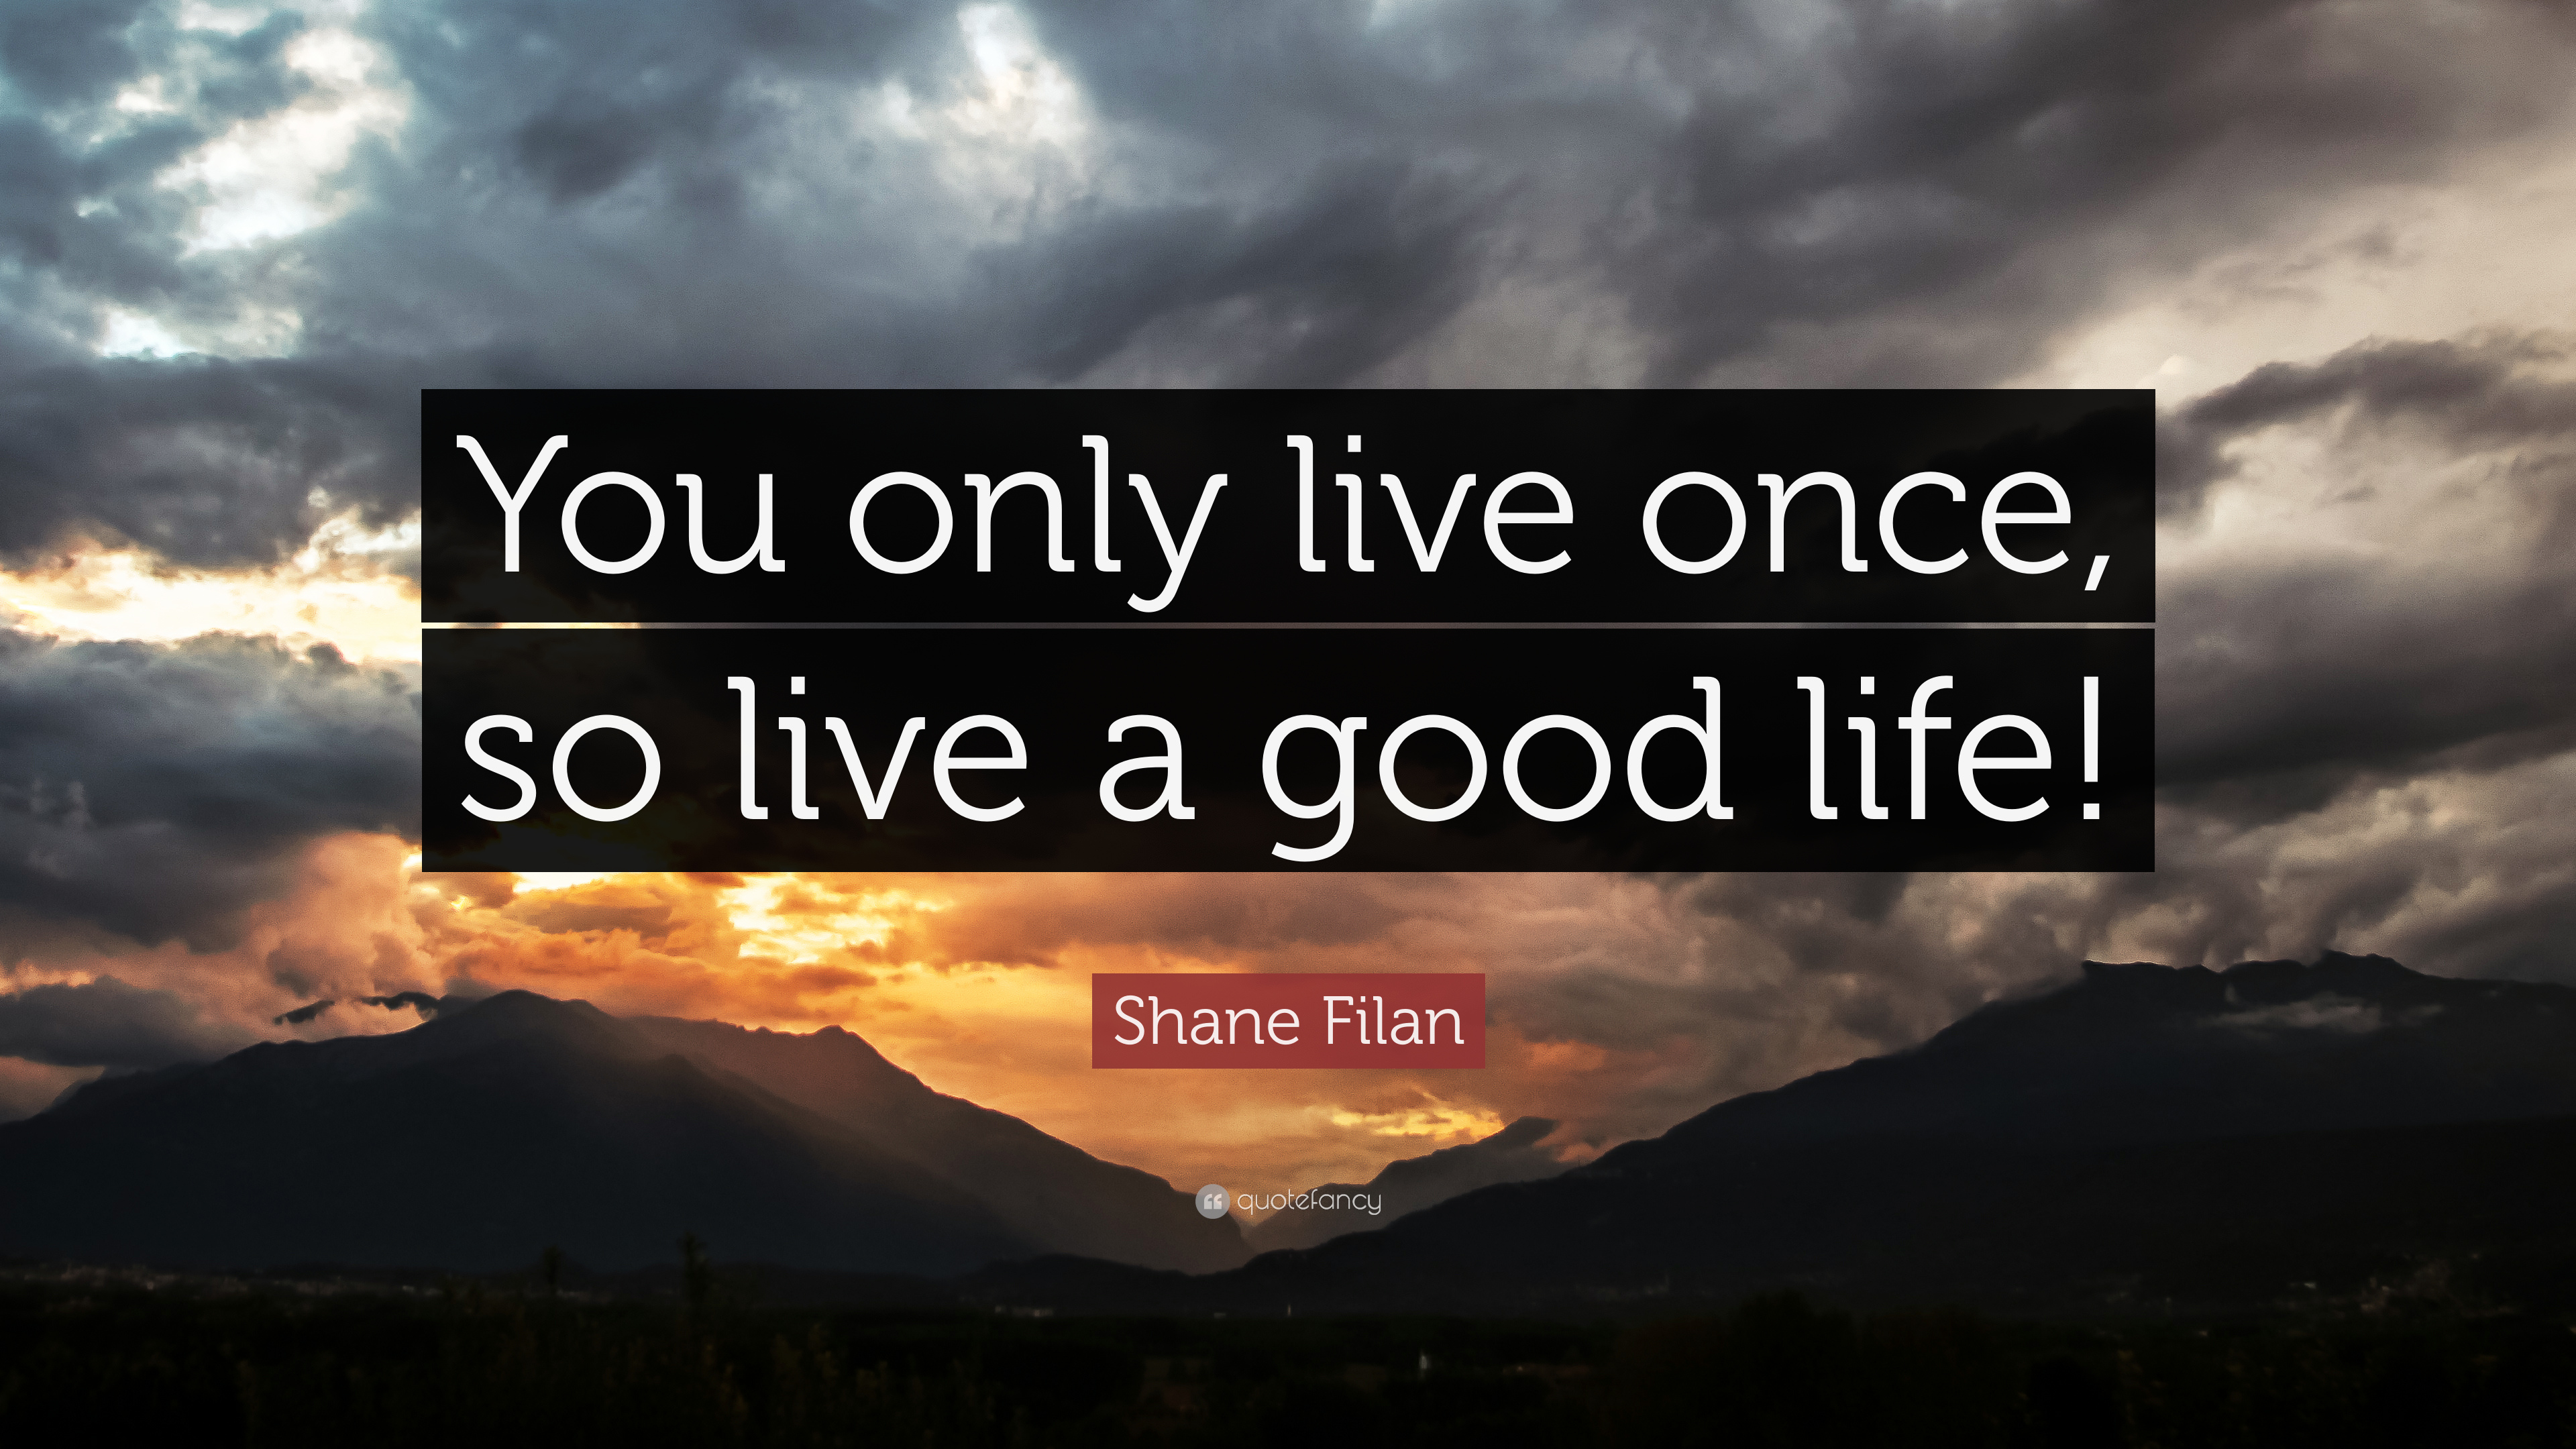 Shane Filan Quotes (35 wallpapers) - Quotefancy